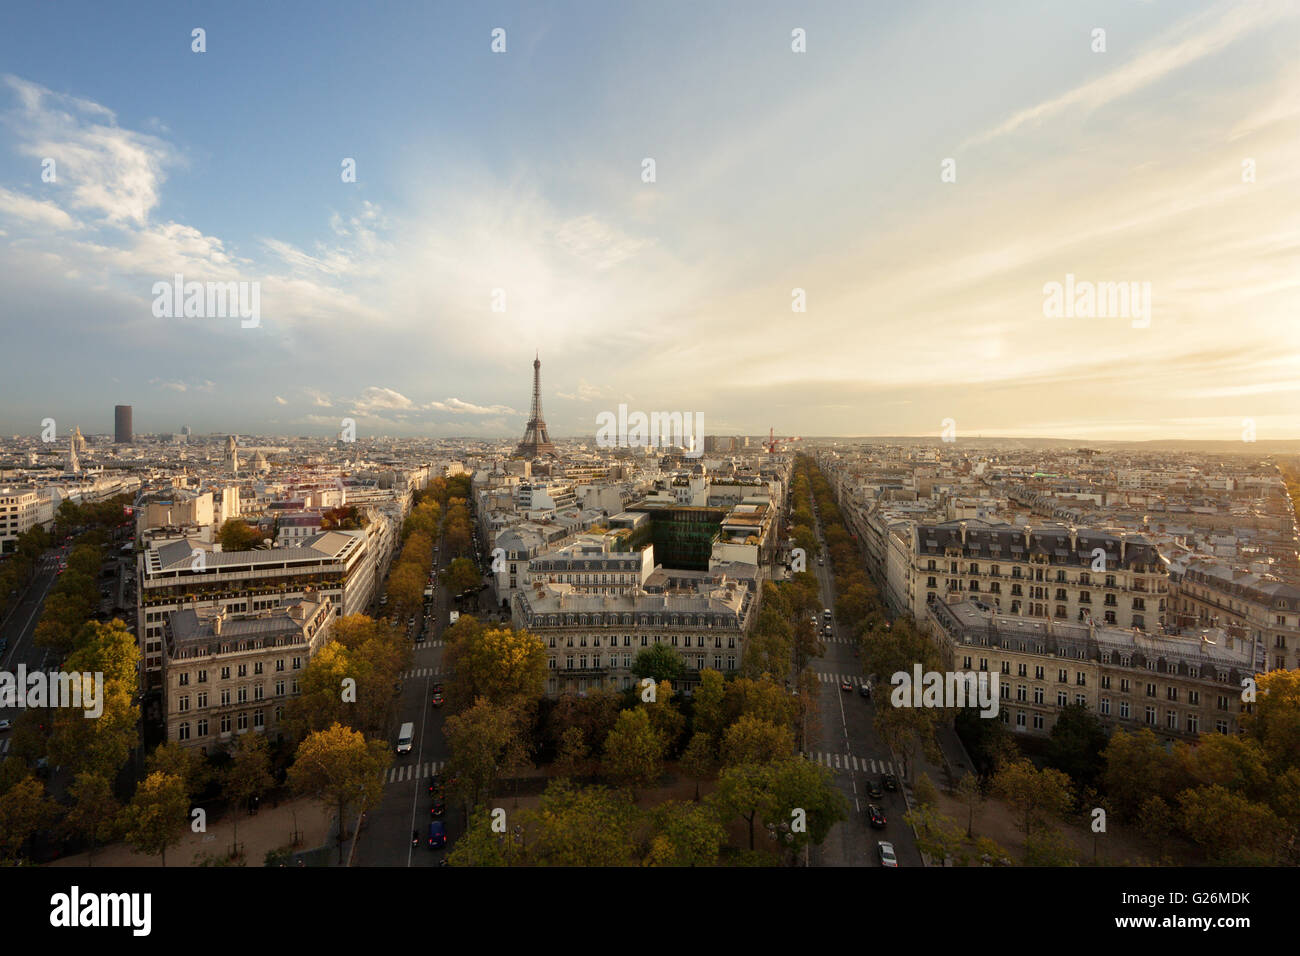 Aerial view of Paris and Eiffel Tower at sunset Stock Photo